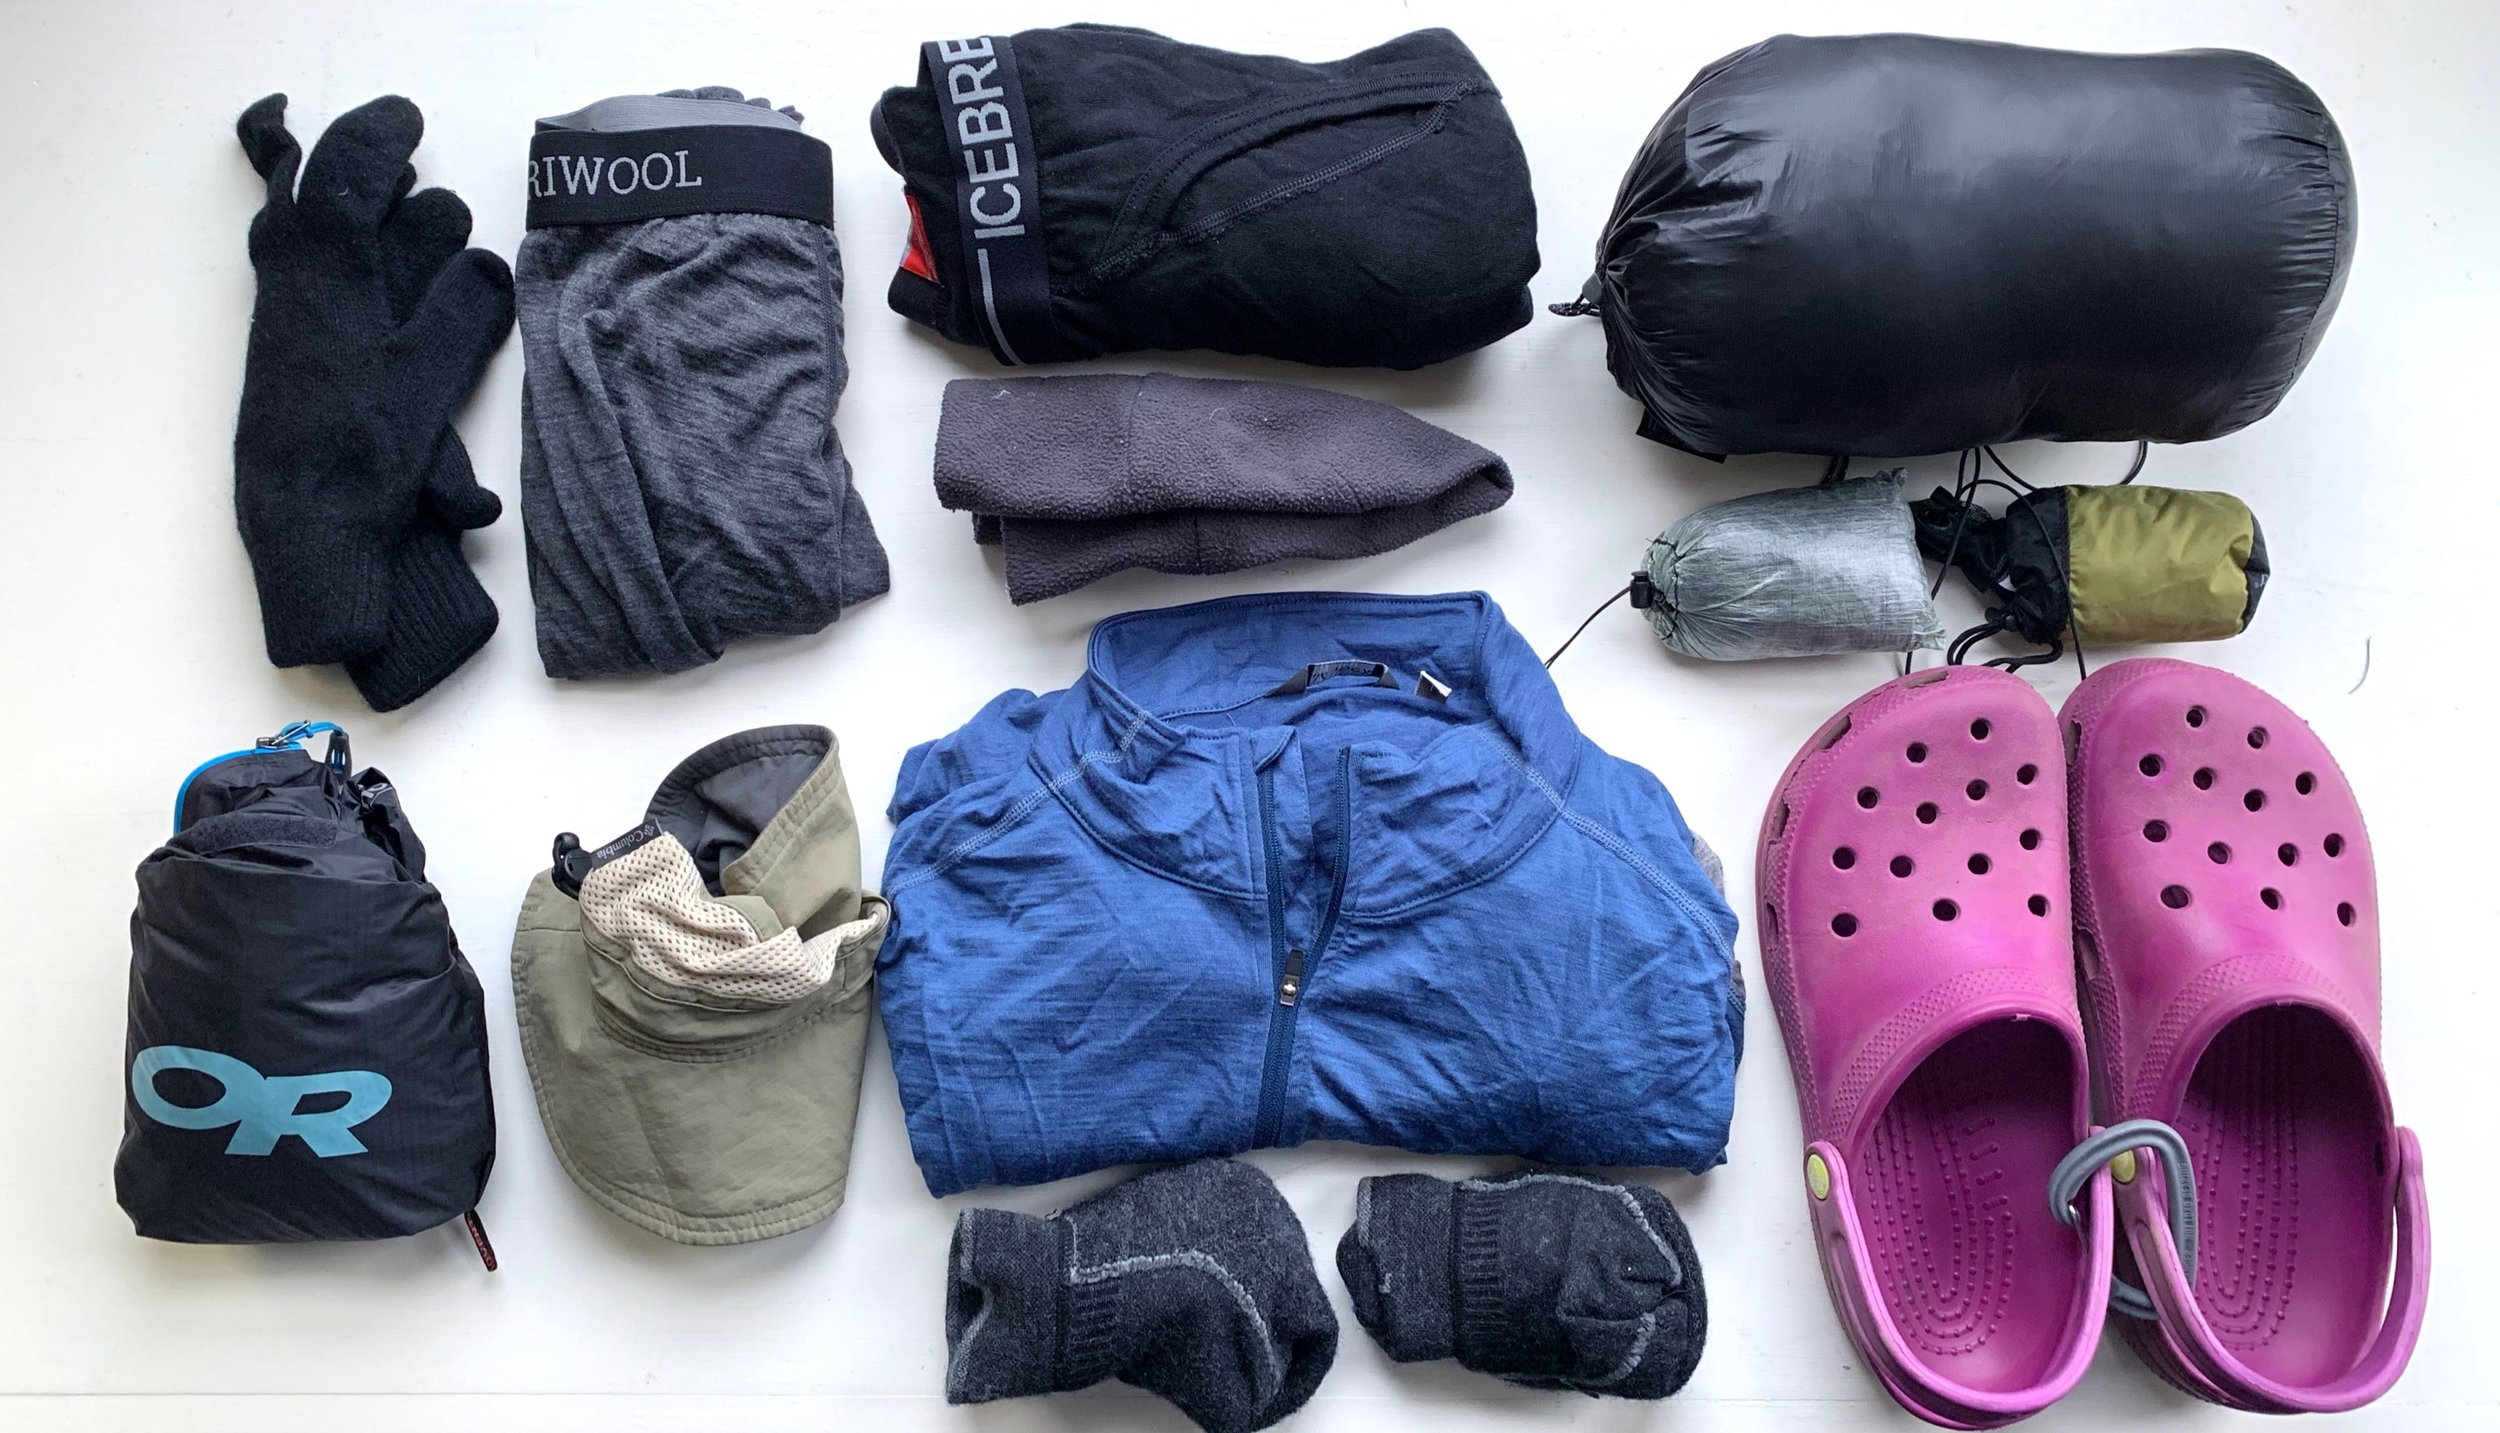 Packed clothing : Zpacks Possumdown gloves, Meriwool underwear, Icebreaker wool leggings, cap, Montbell down jacket, rain kilt, bug net, Outdoor Research rain jacket, hat, mid-layer pullover, extra Darn Tough hiking socks, and crocs for camping and river crossing.